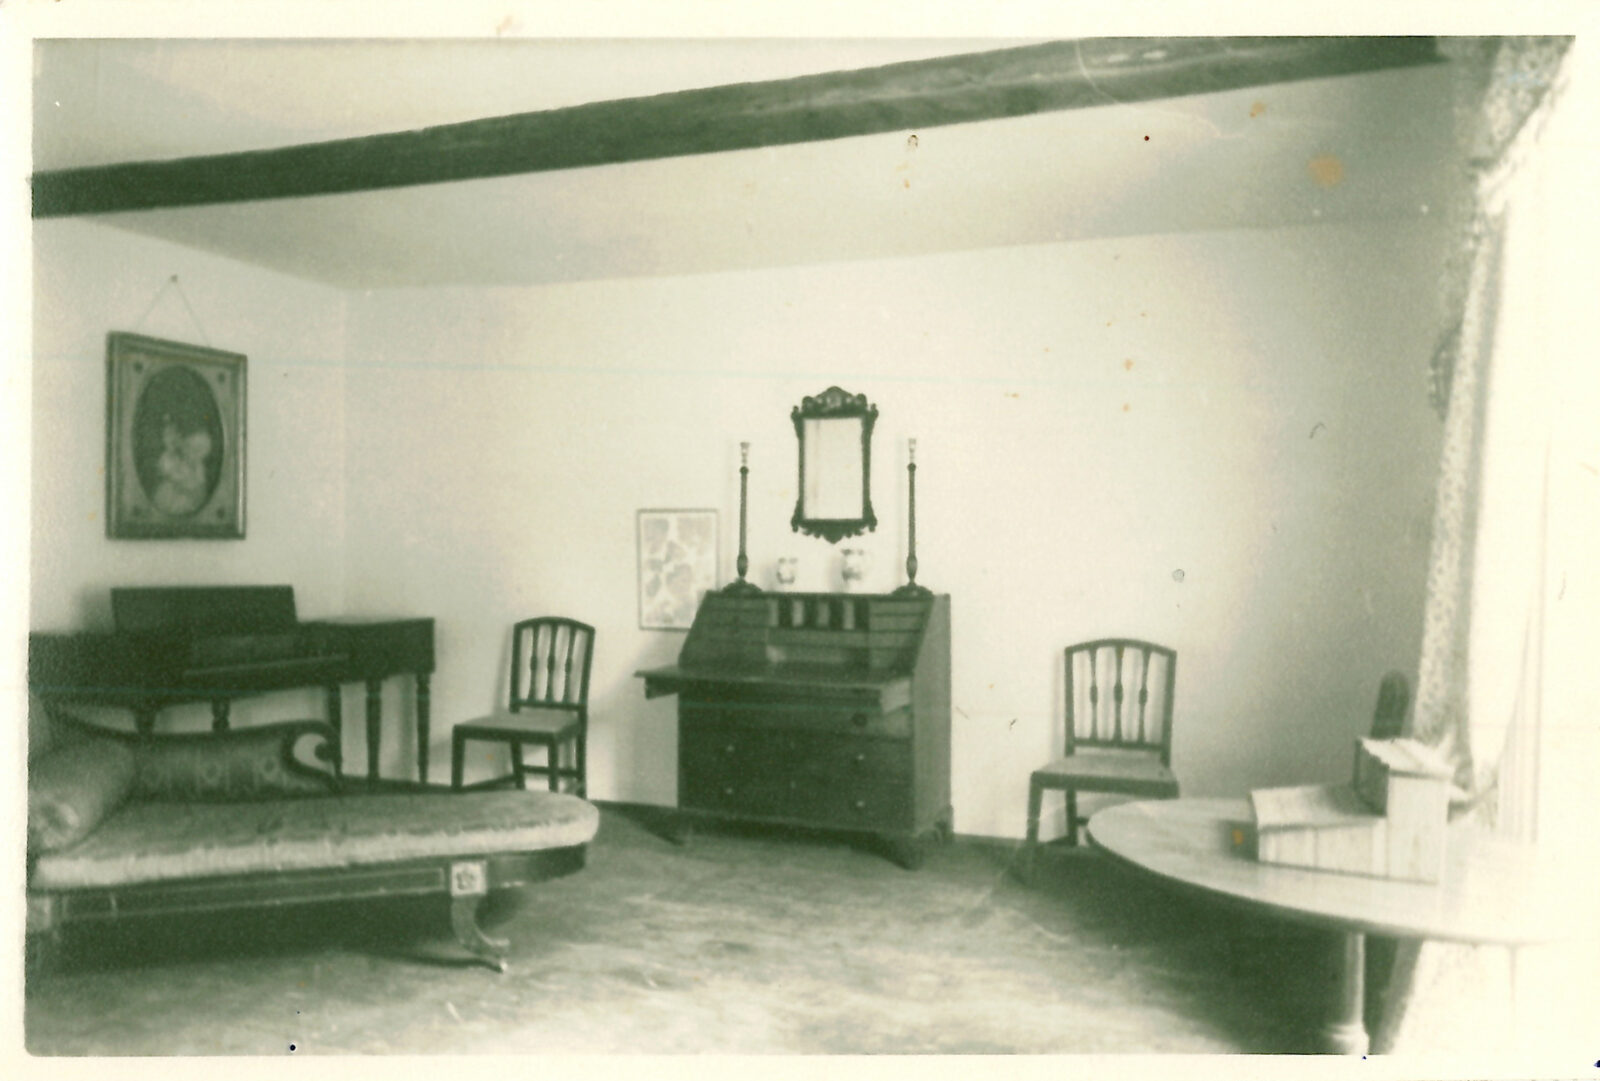 The Drawing Room at Jane Austens House, in the early days of the museum